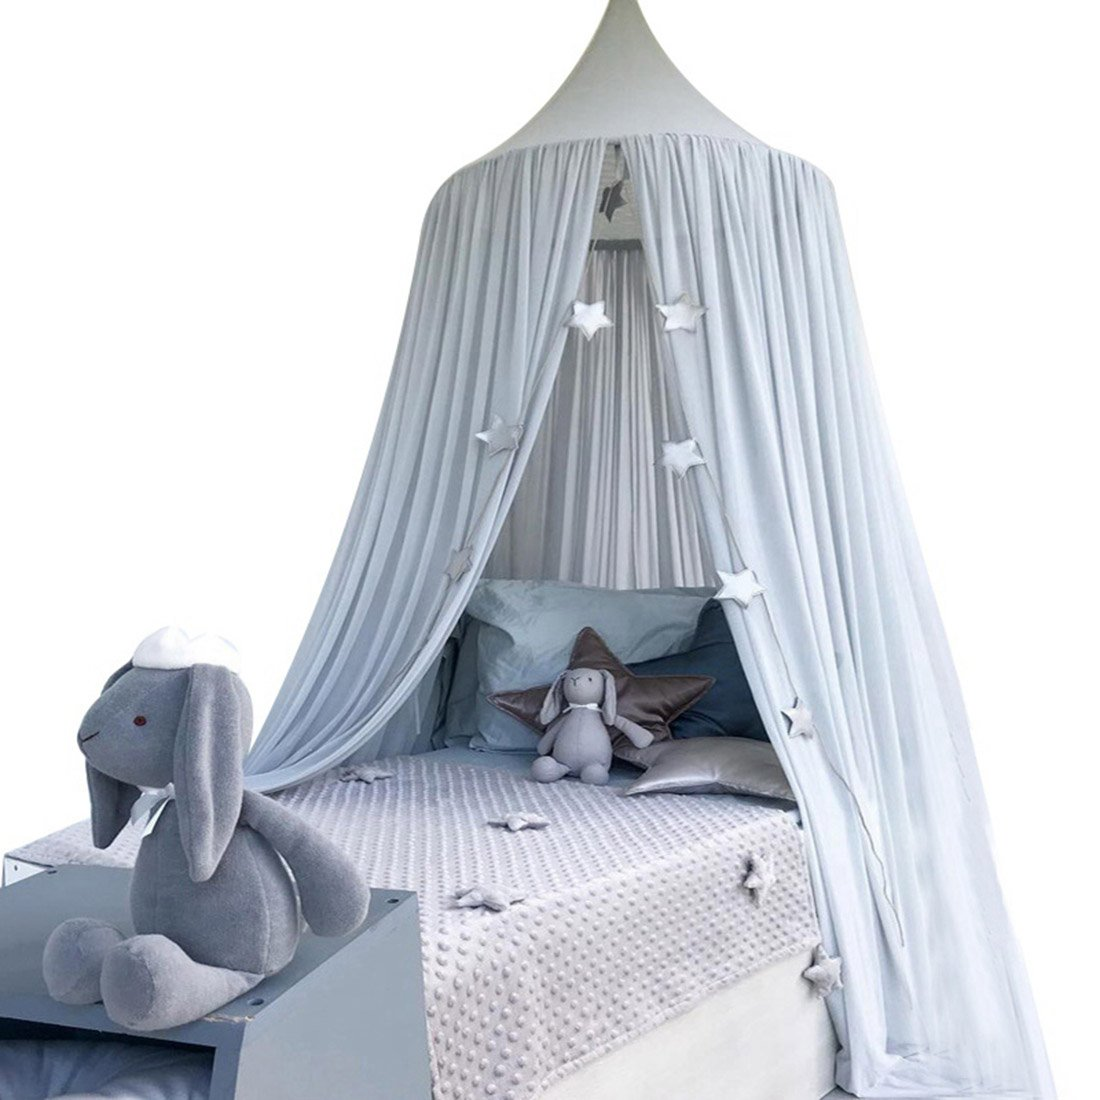 Enerhu Bed Canopy Mosquito Net Insect Netting Protection Indoor Kids Bedroom Baby Crib White